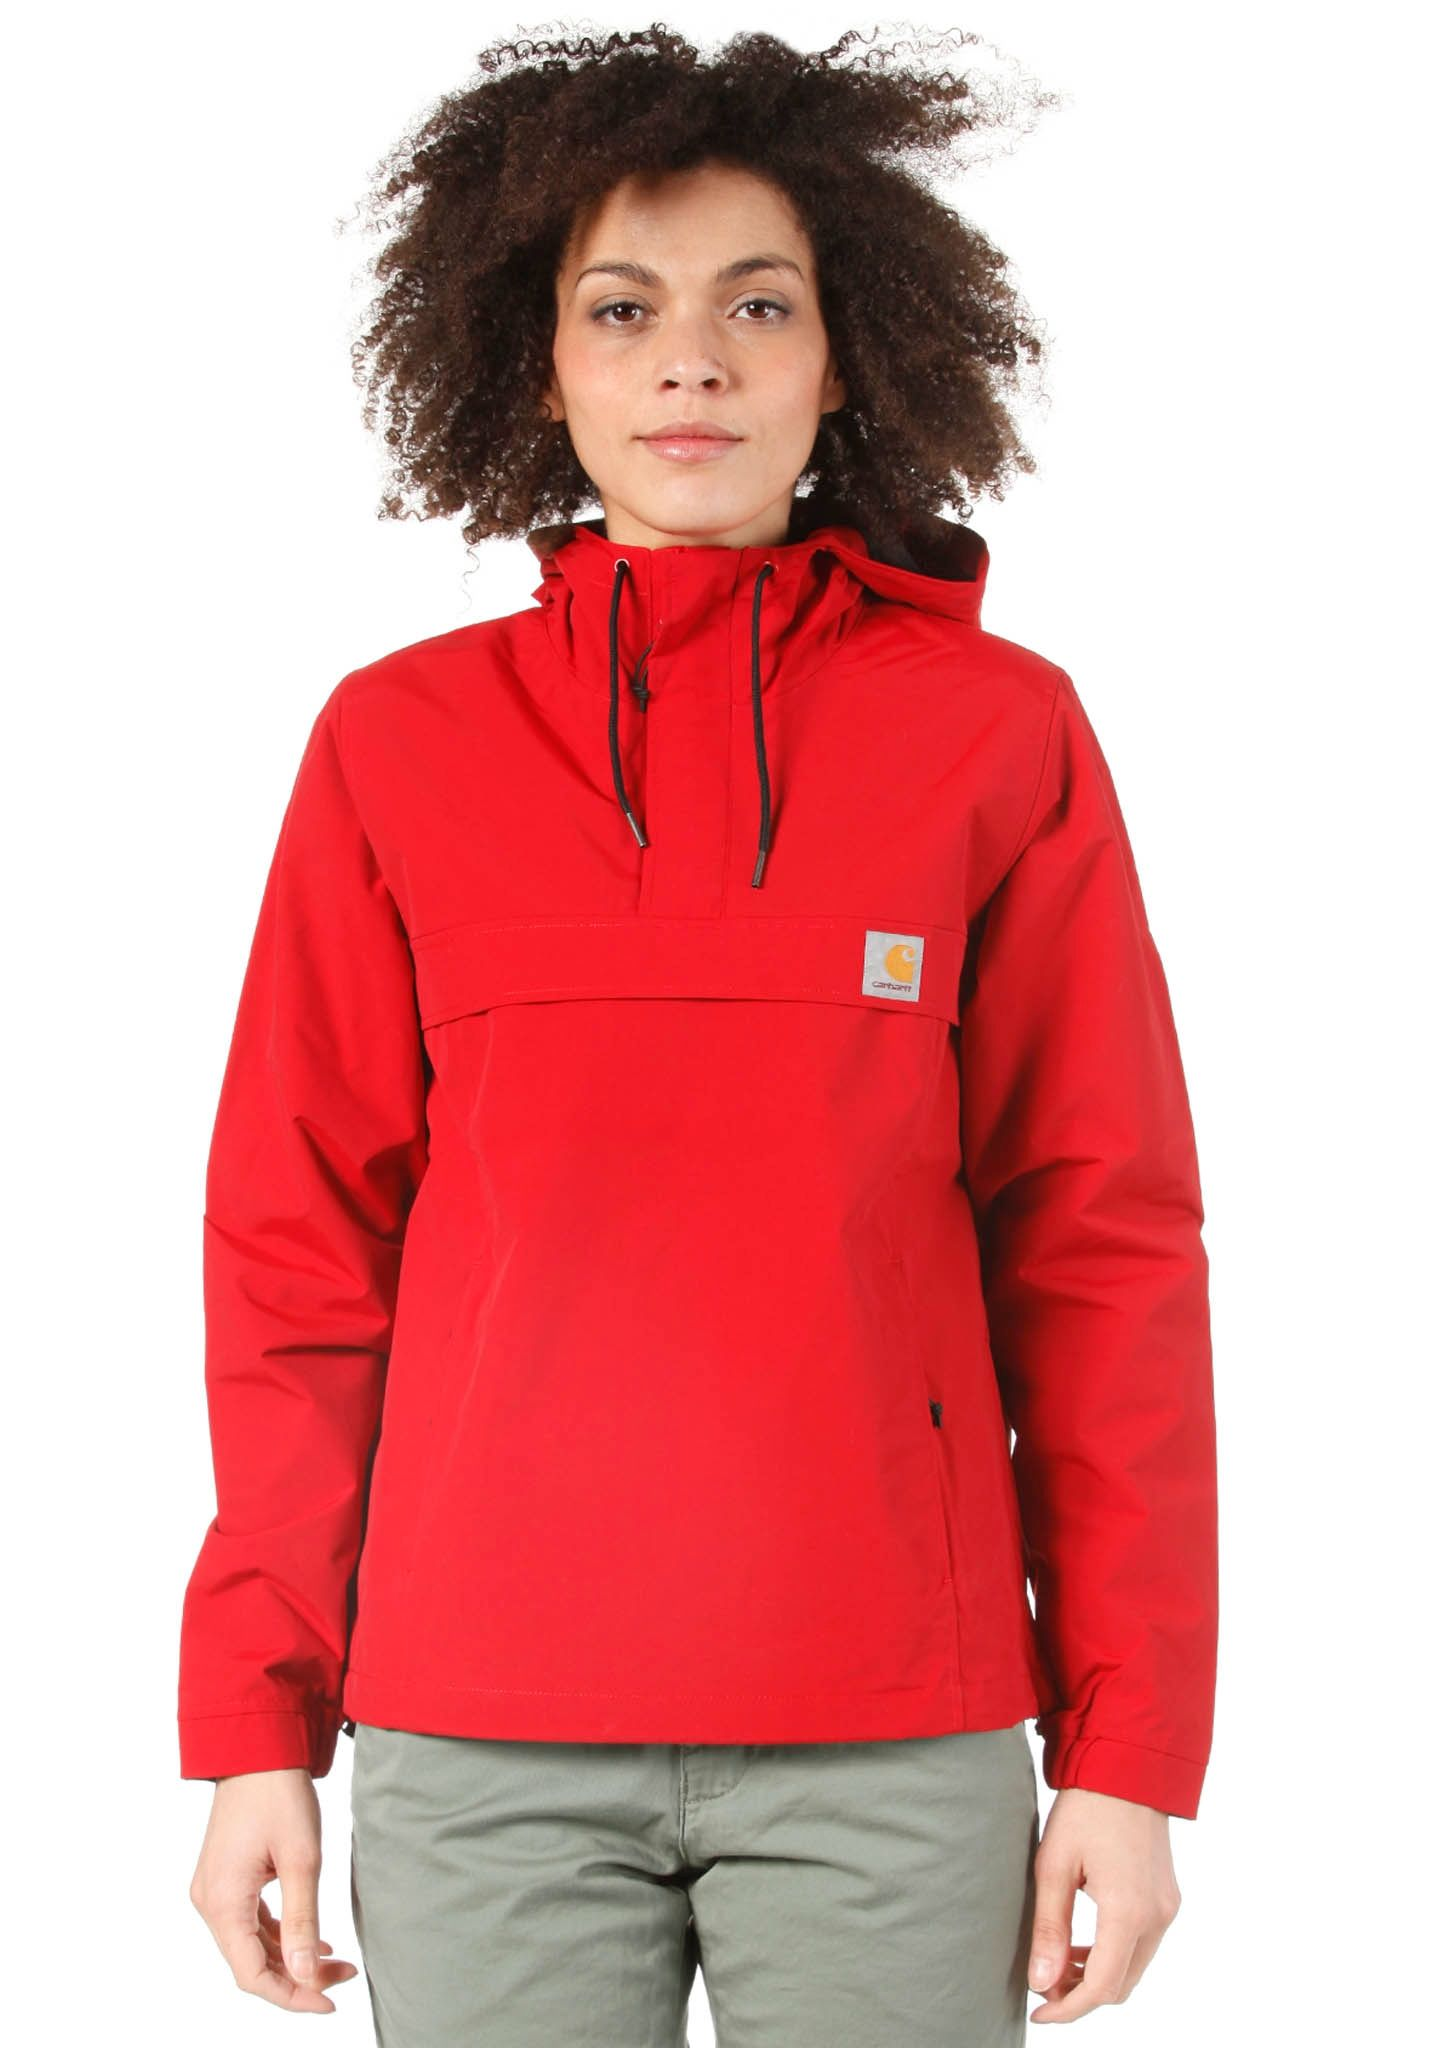 ace35ff84a2 carhartt WIP Nimbus Pullover Jacket - Jacket for Women - Red - Planet Sports